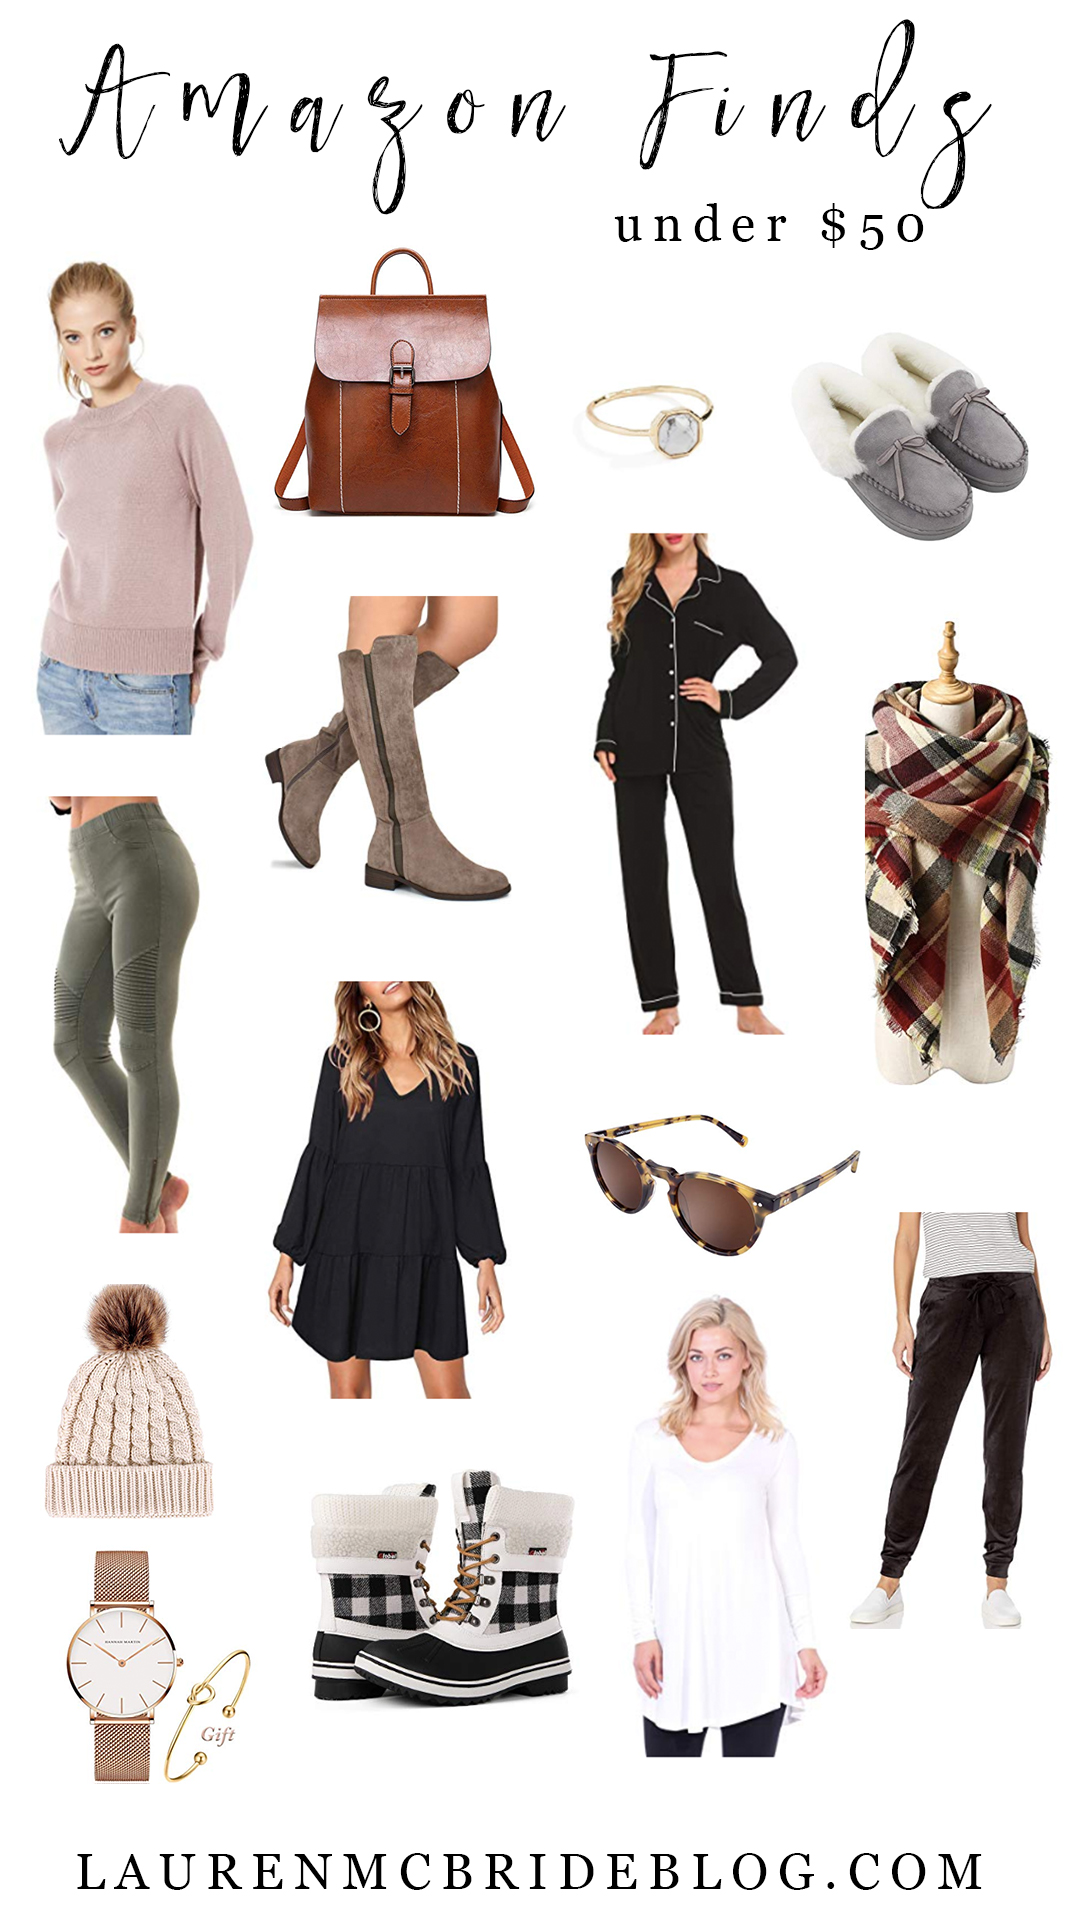 Connecticut life and style blogger Lauren McBride shares her December Amazon Finds Under $50 including great last minute gift ideas!